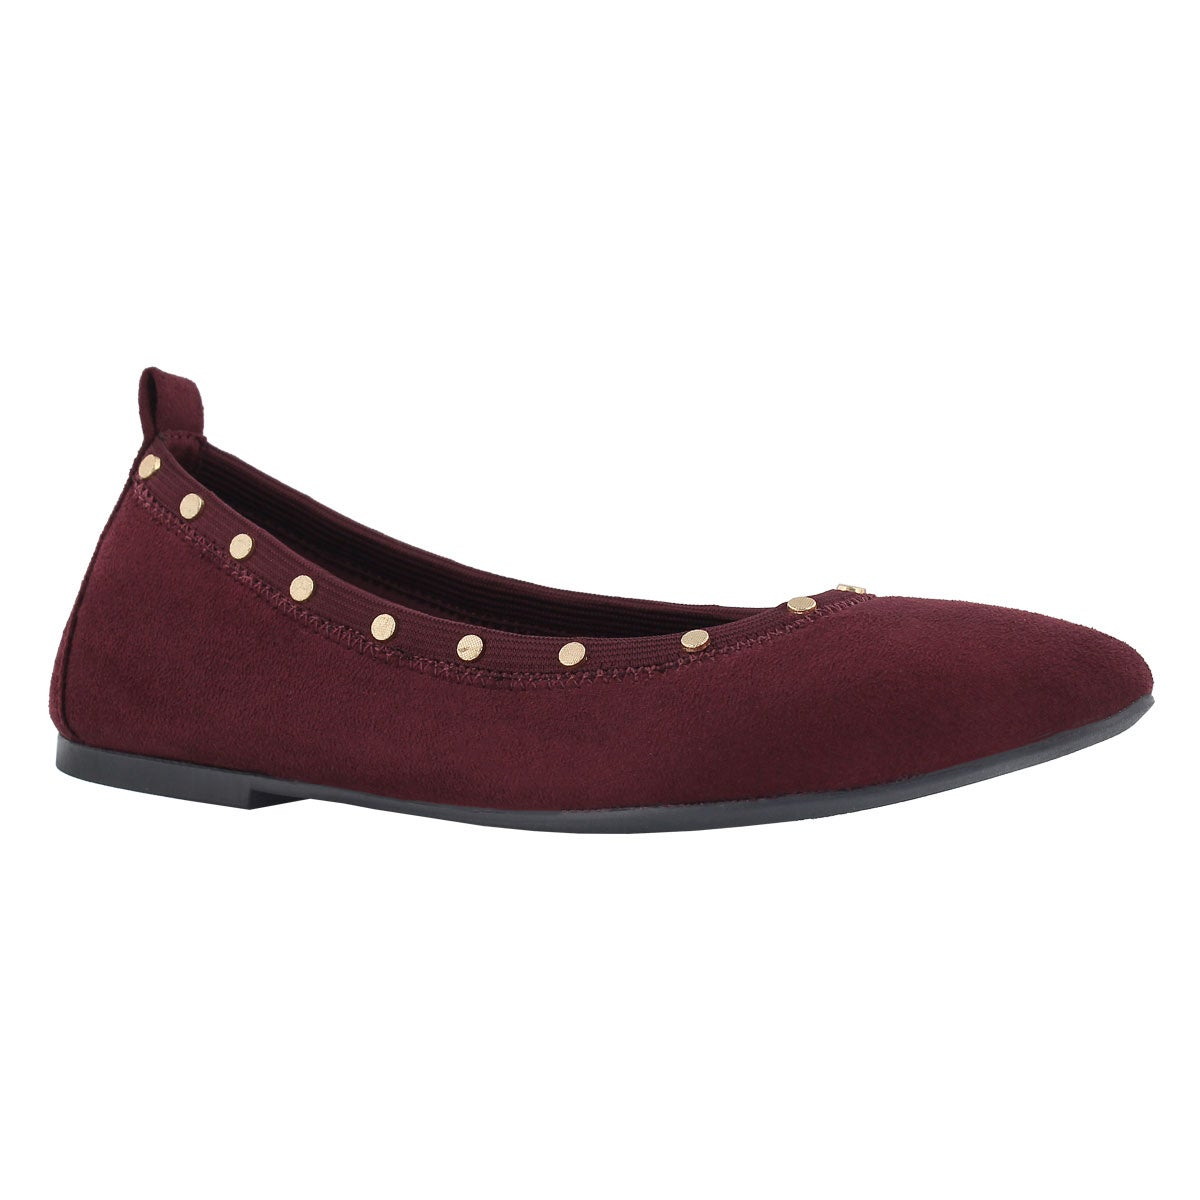 Women's CLEO burgundy studded casual flats